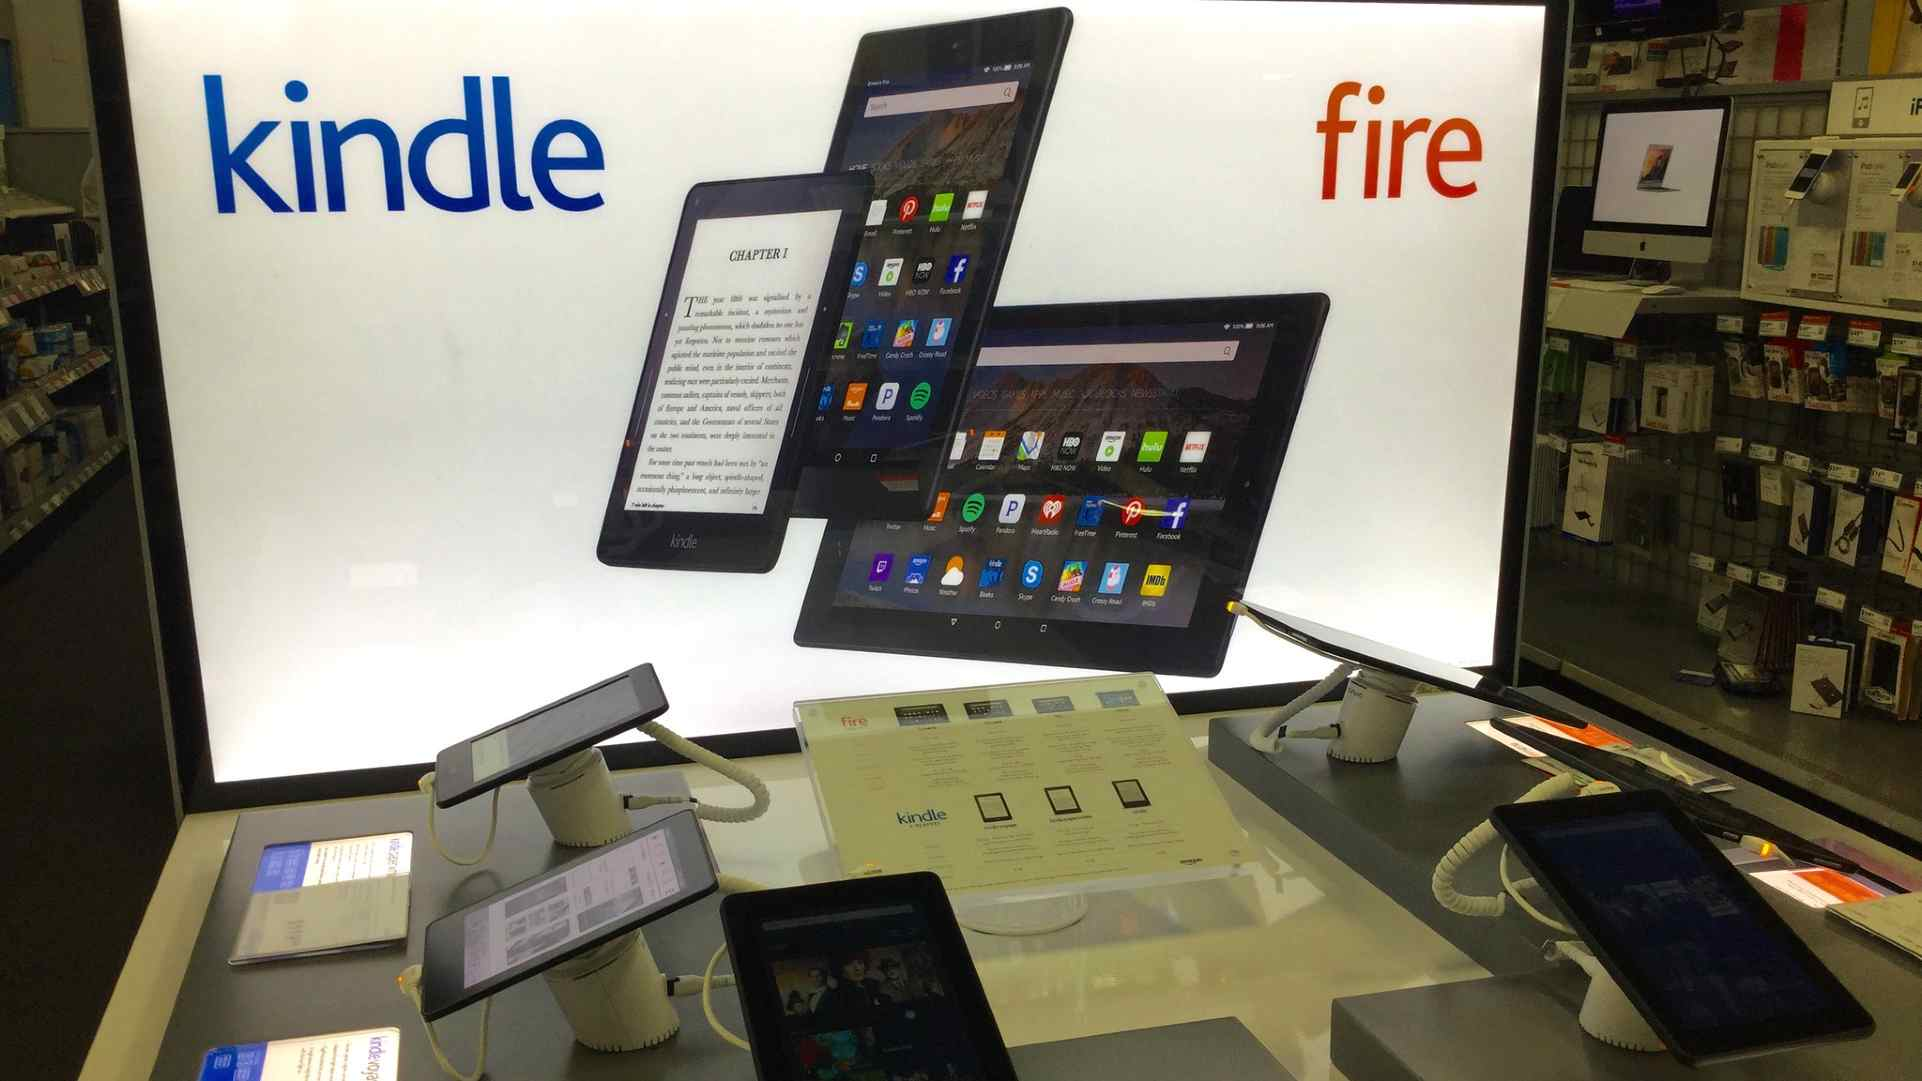 Kindle Fire tablets on display at Best Buy in 2015